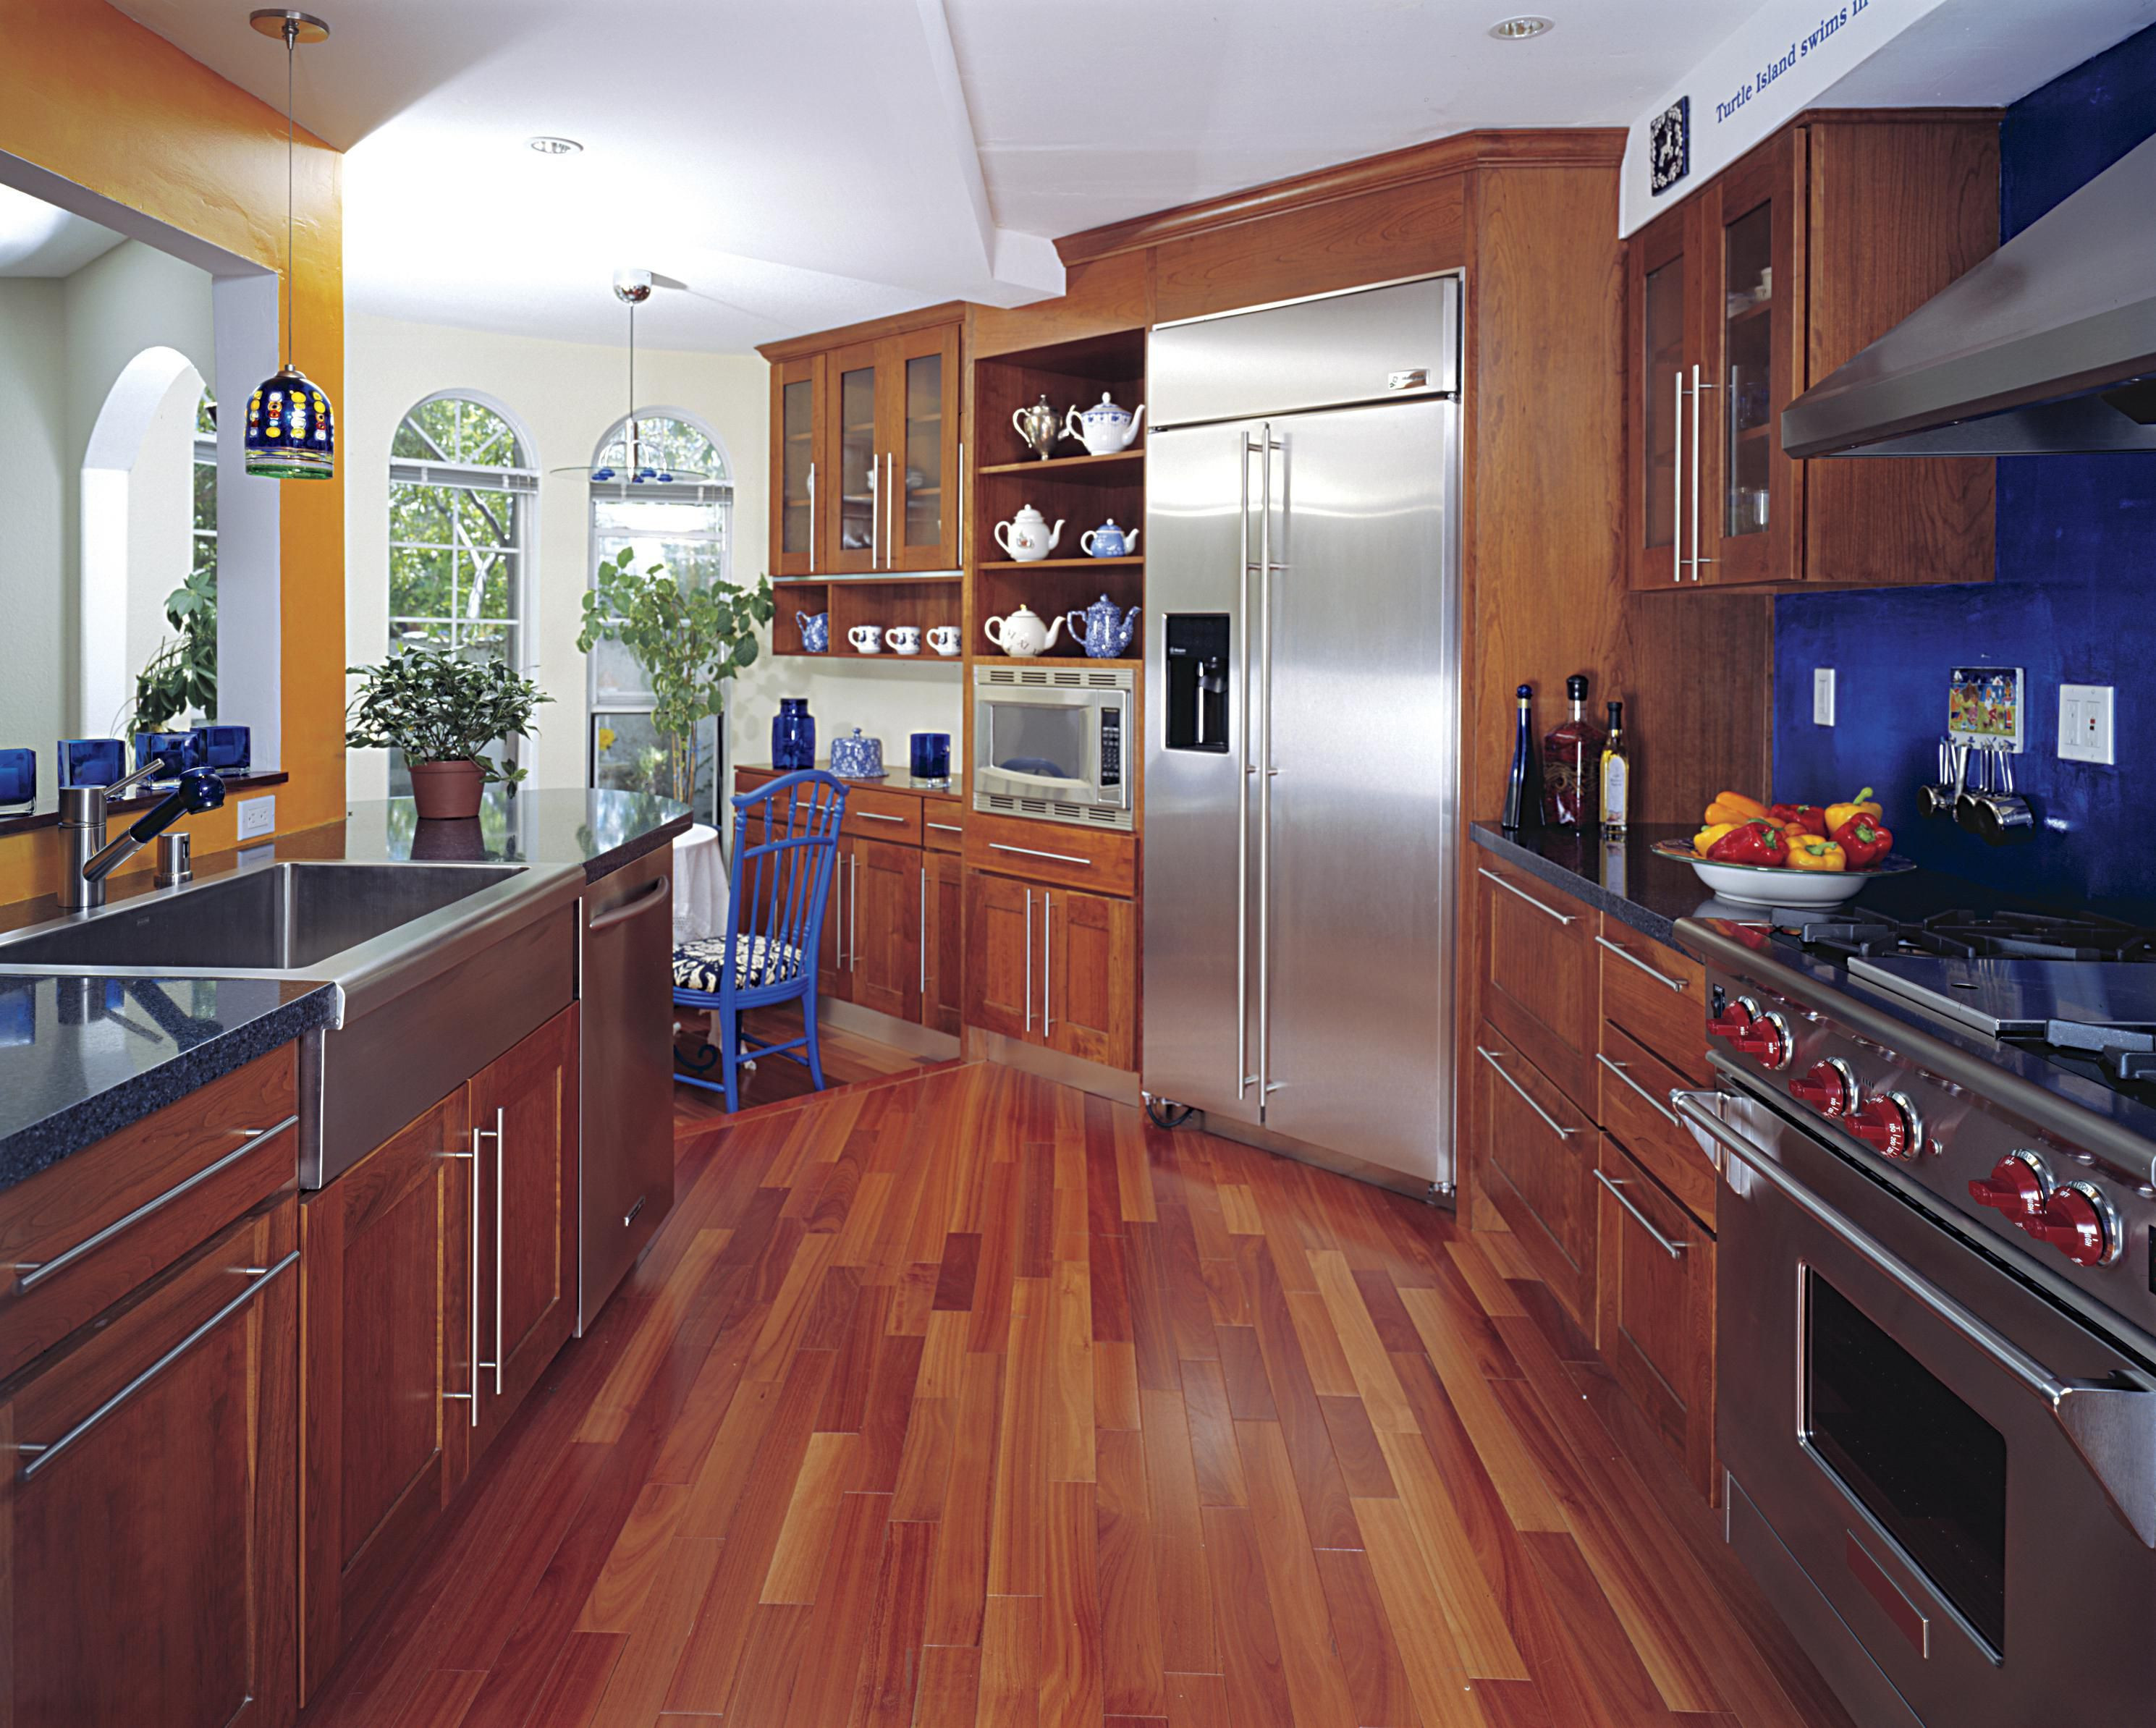 Hardwood Flooring Selection Tips Of Hardwood Floor In A Kitchen is This Allowed Throughout 186828472 56a49f3a5f9b58b7d0d7e142